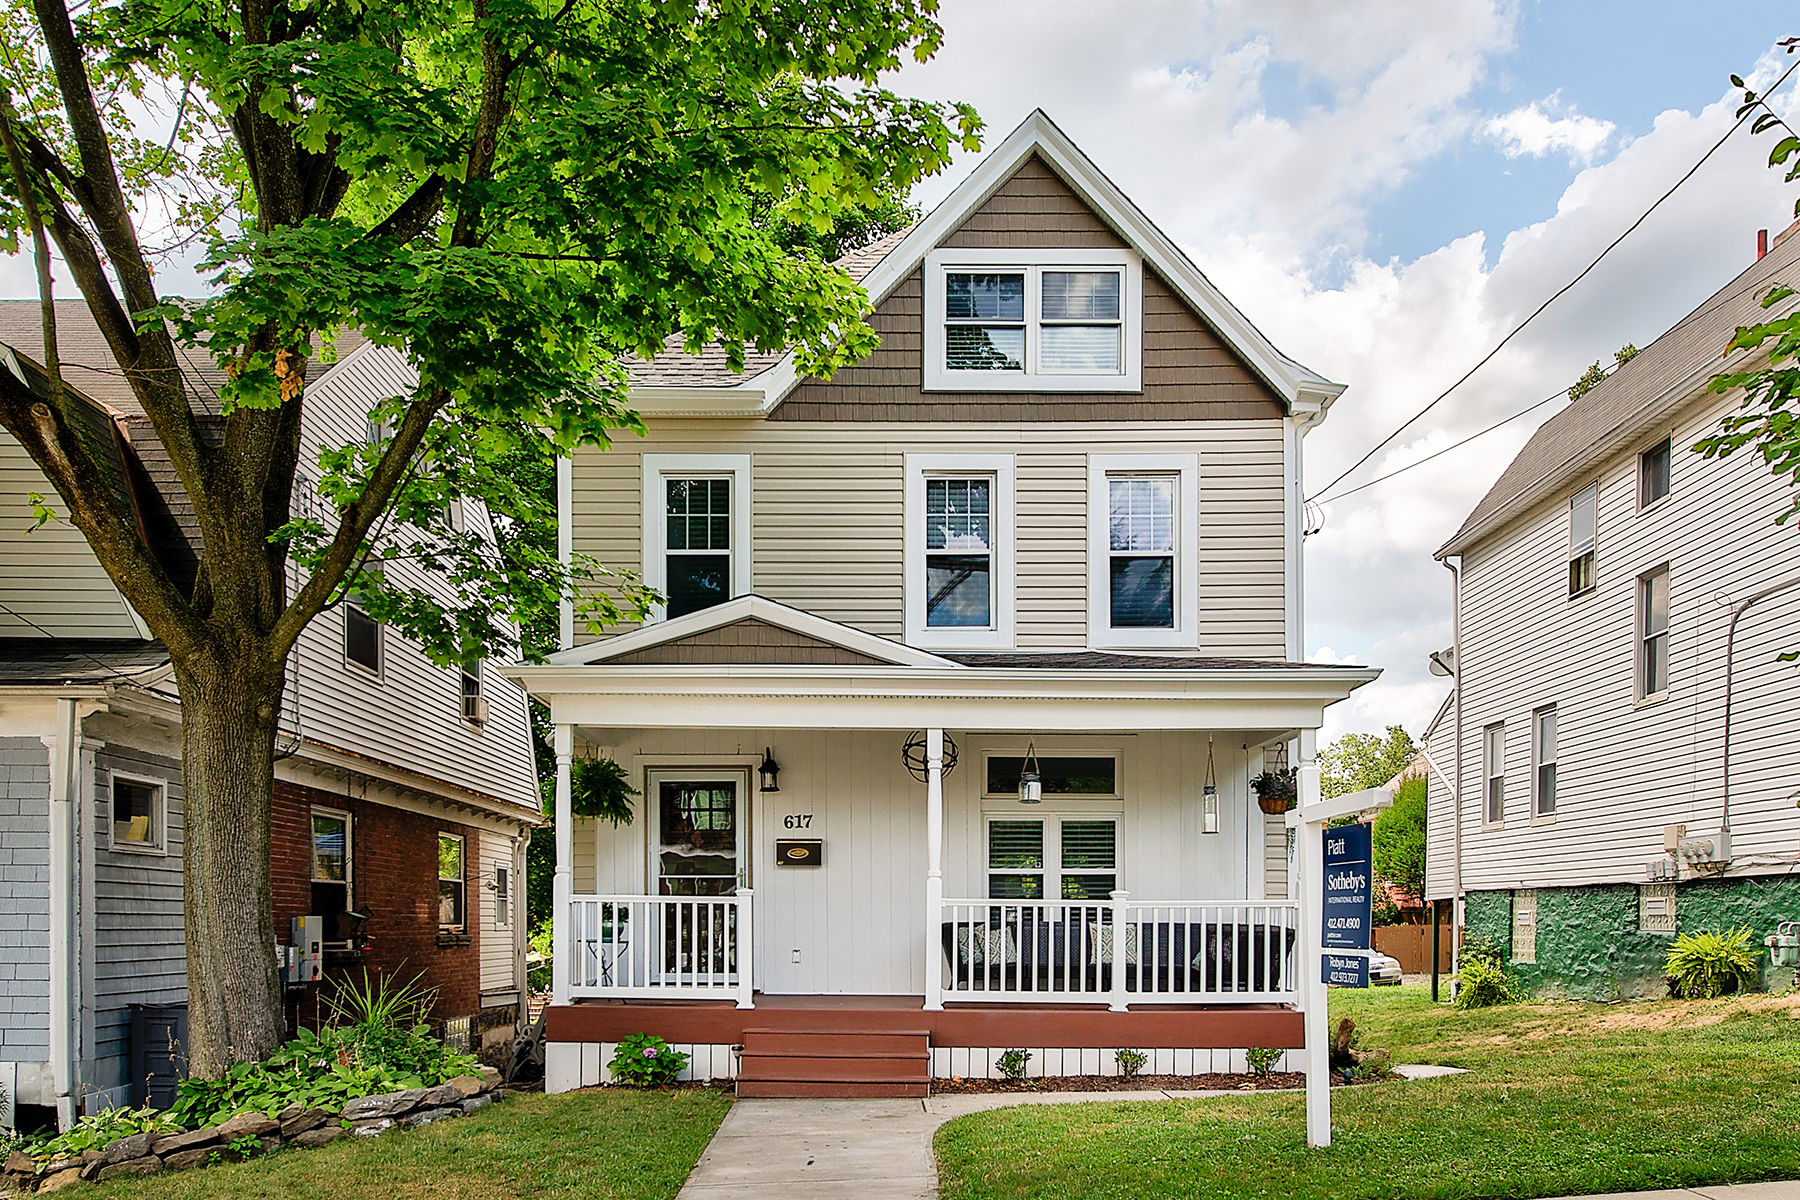 Single Family Homes for Sale at Sewickley, Pennsylvania 15143 United States